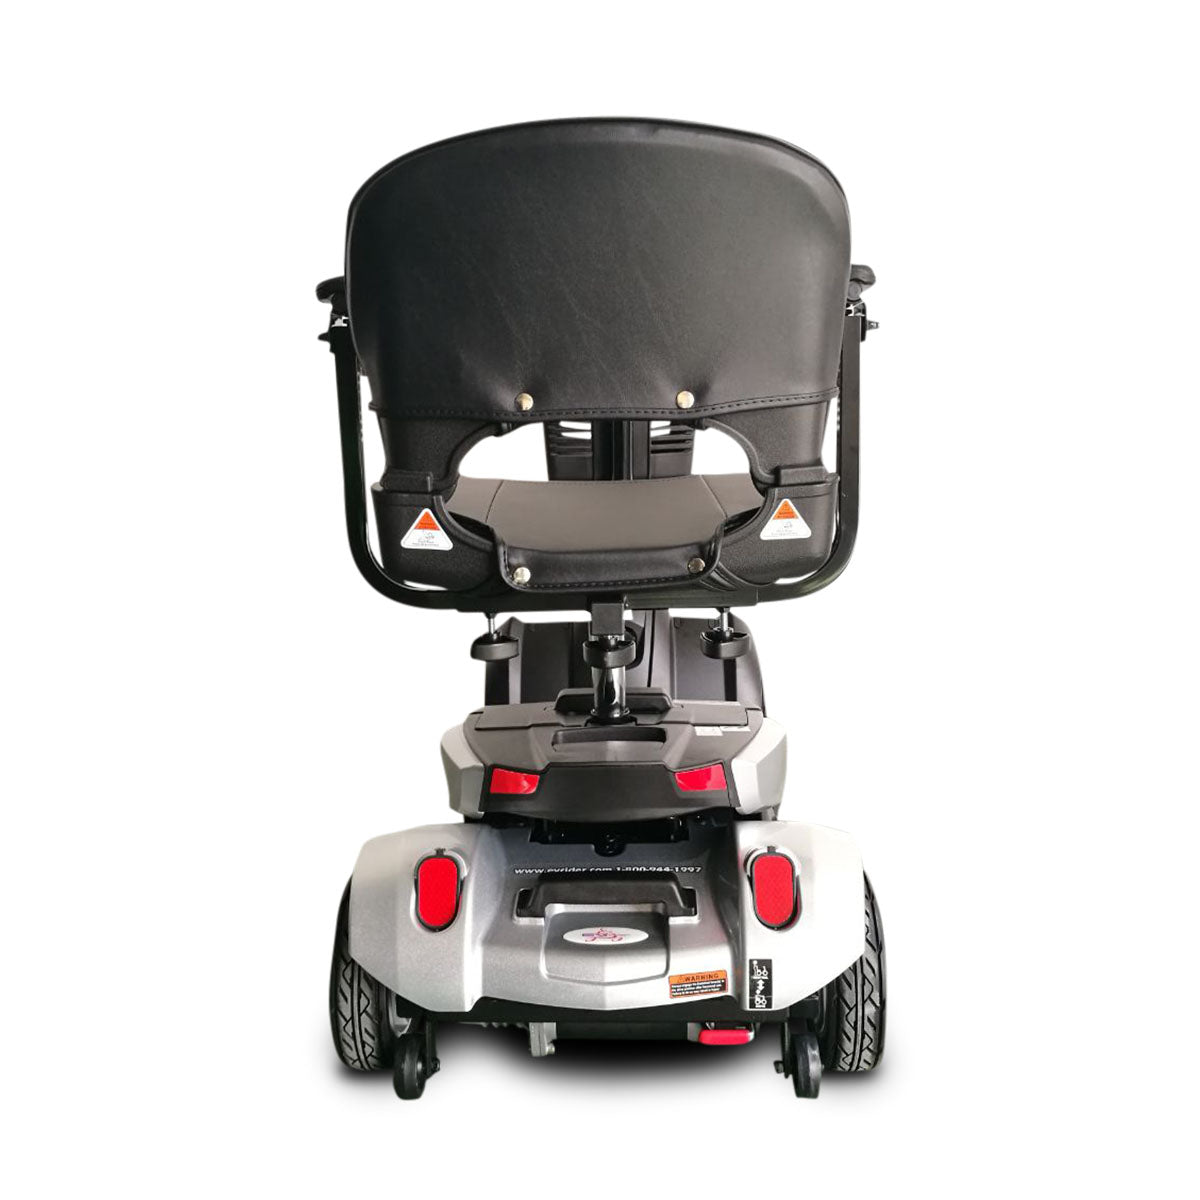 EV Rider CityCruzer 4-Wheel Transportable Mobility Scooter